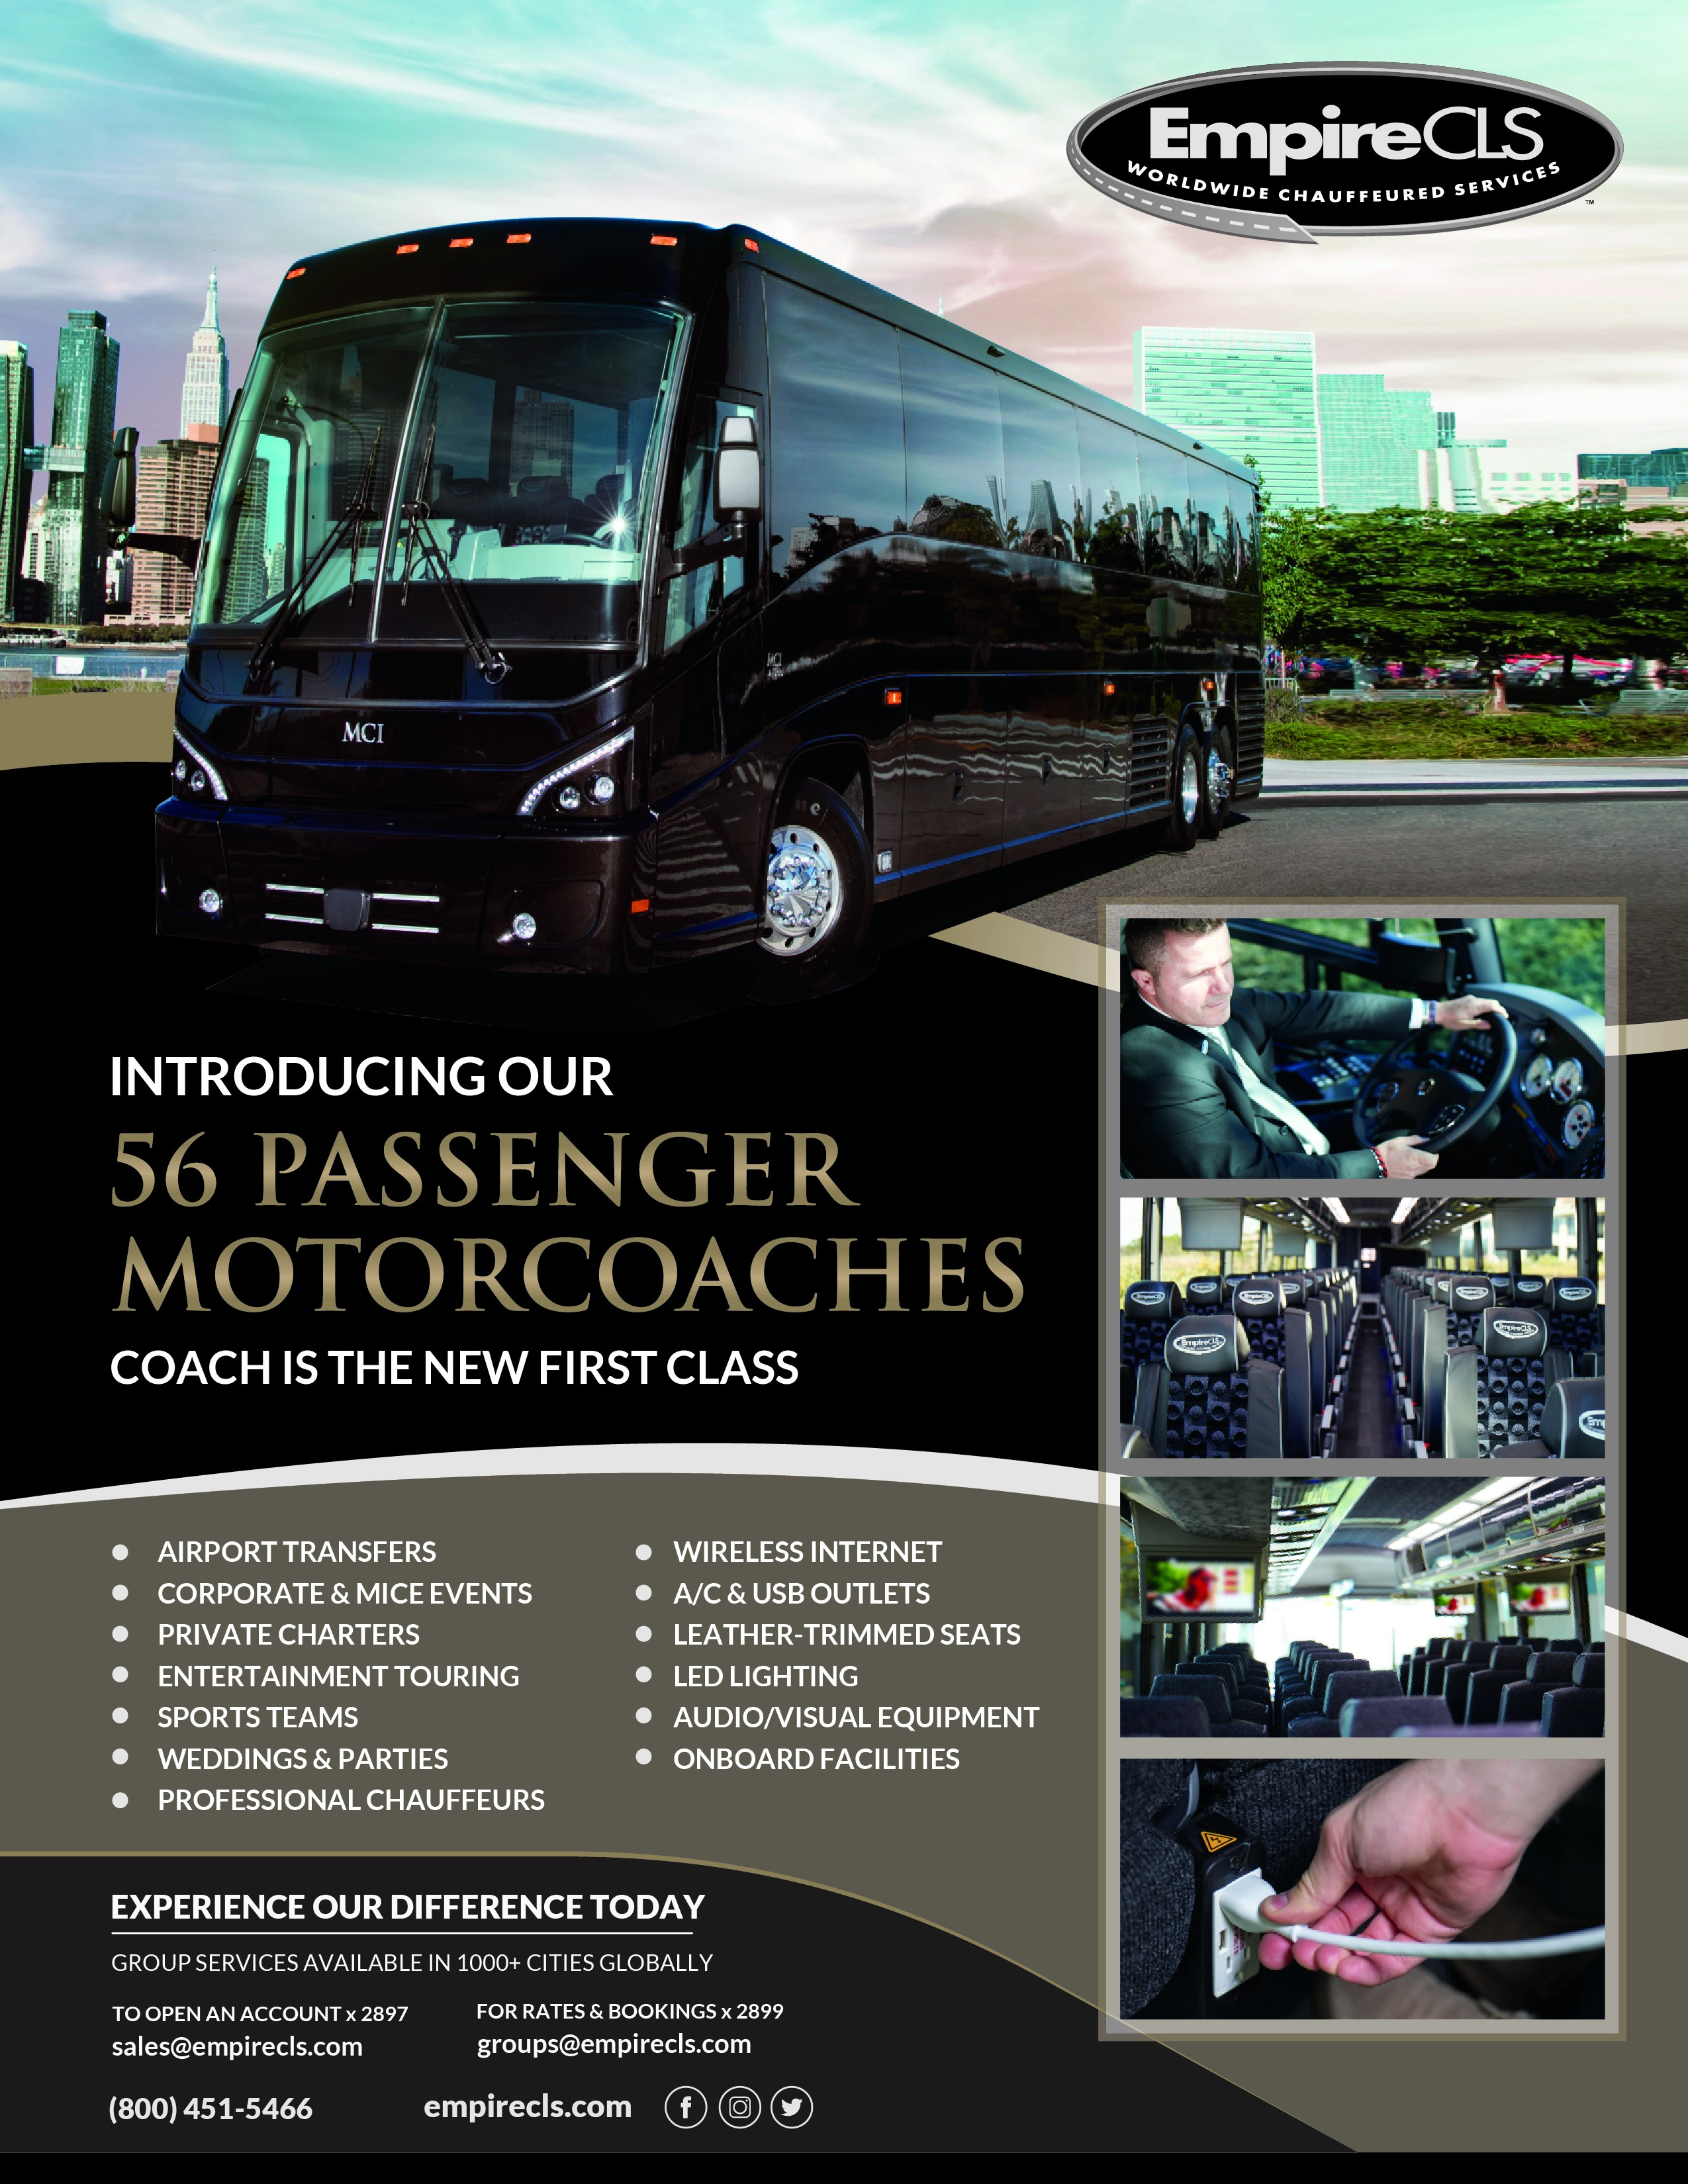 BIG OPPORTUNITY to design for leader in travel and transportation industry!